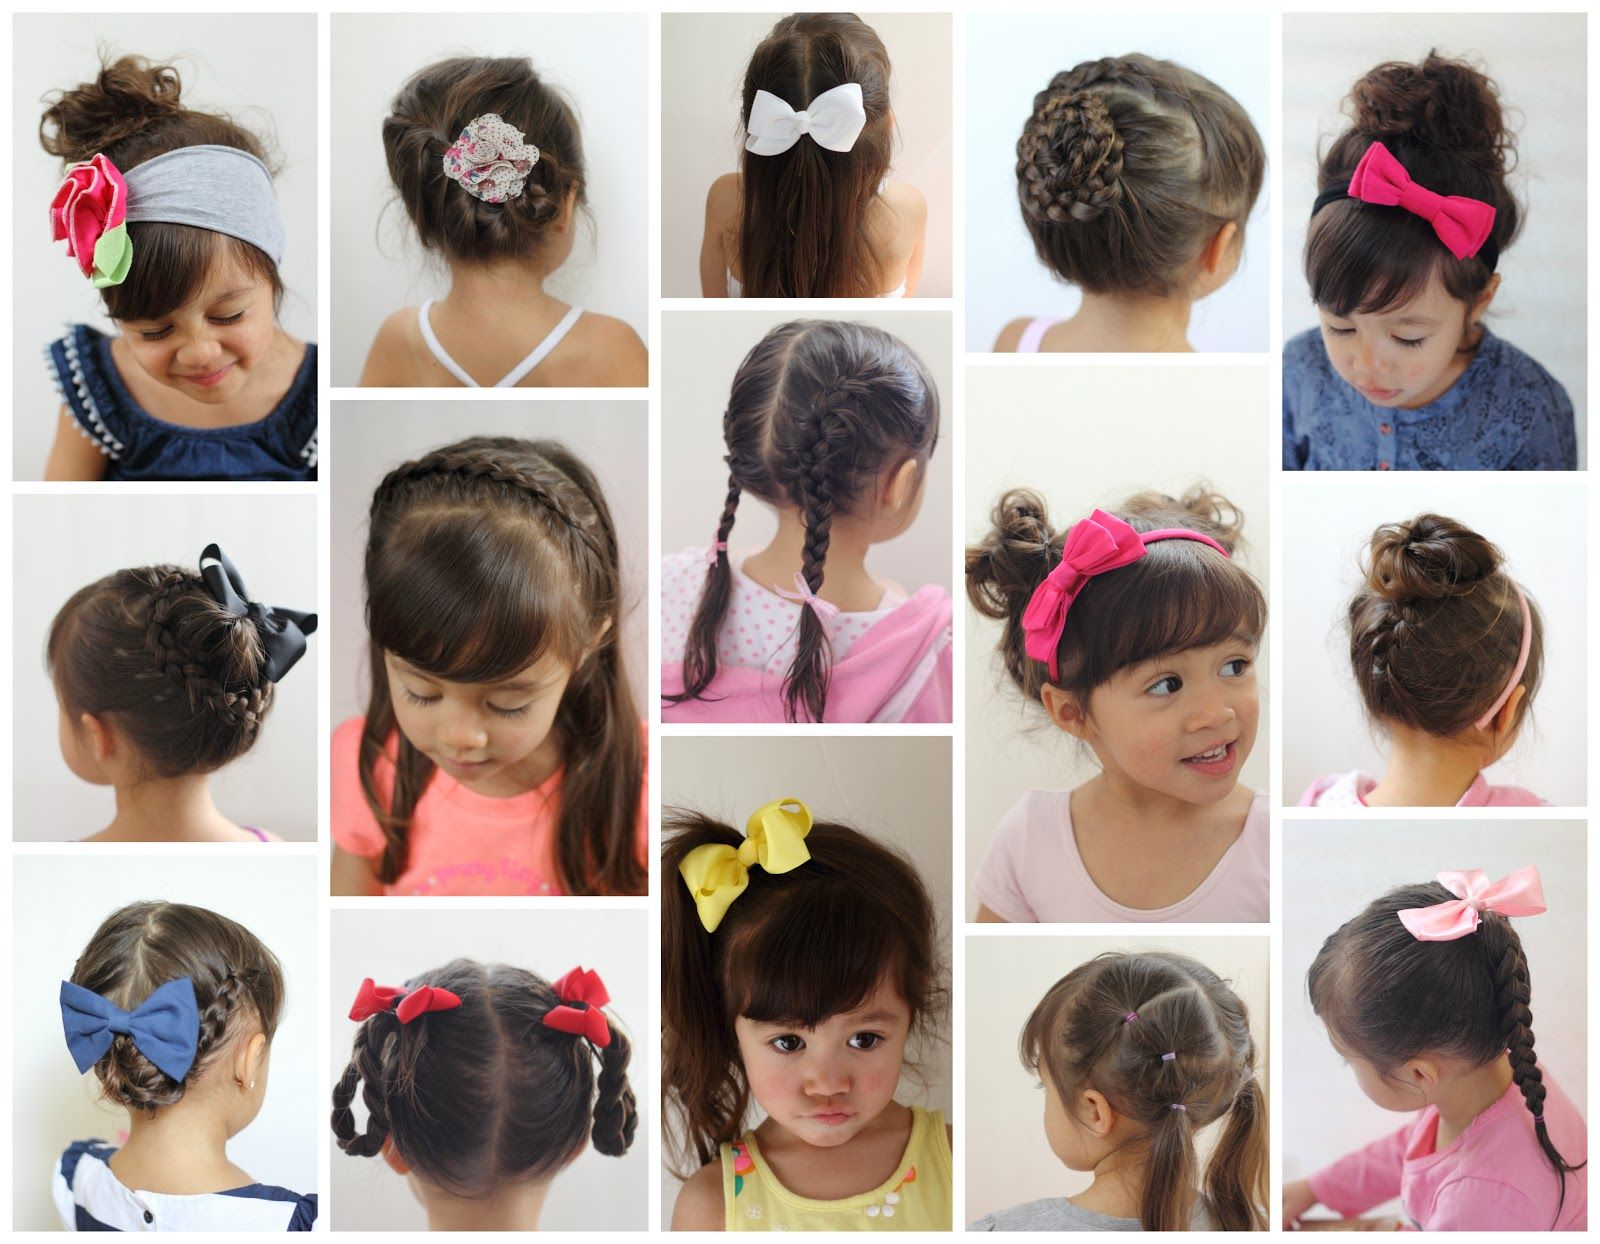 16 Toddler Hair Styles To Mix Up The Pony Tail And Simple Braids